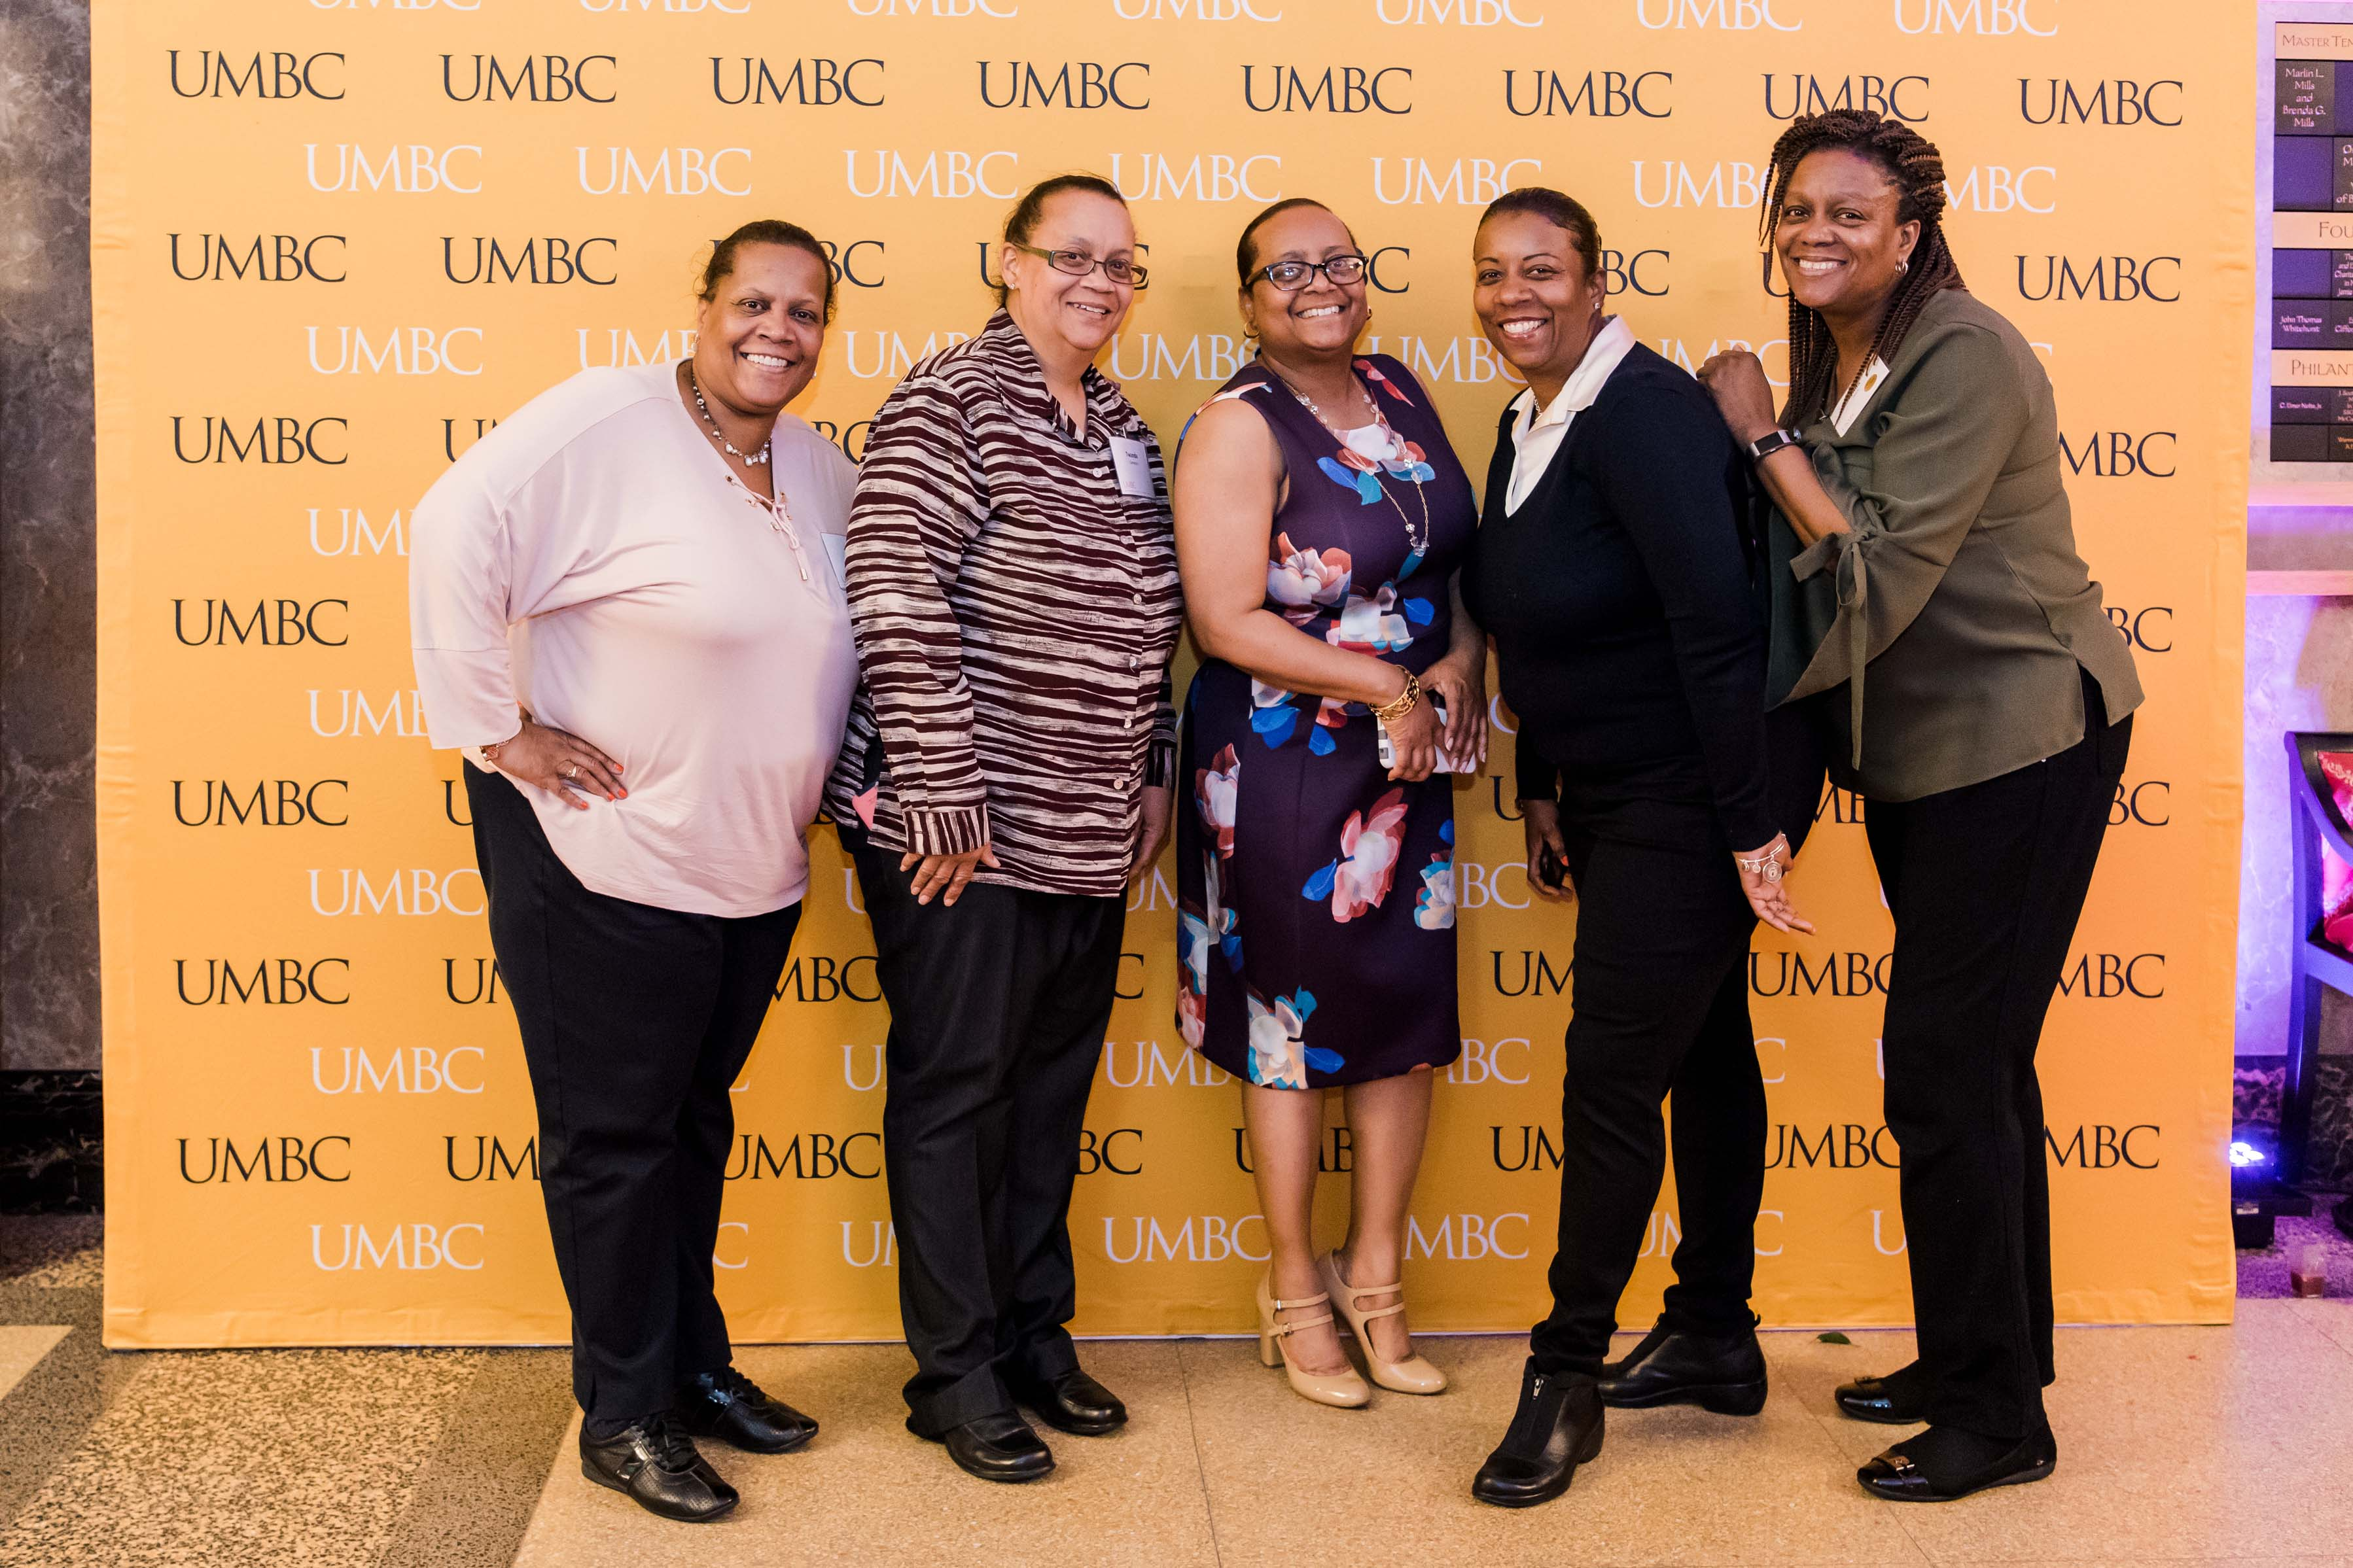 Group of 5 black women pose with UMBC wall at wine tasting event